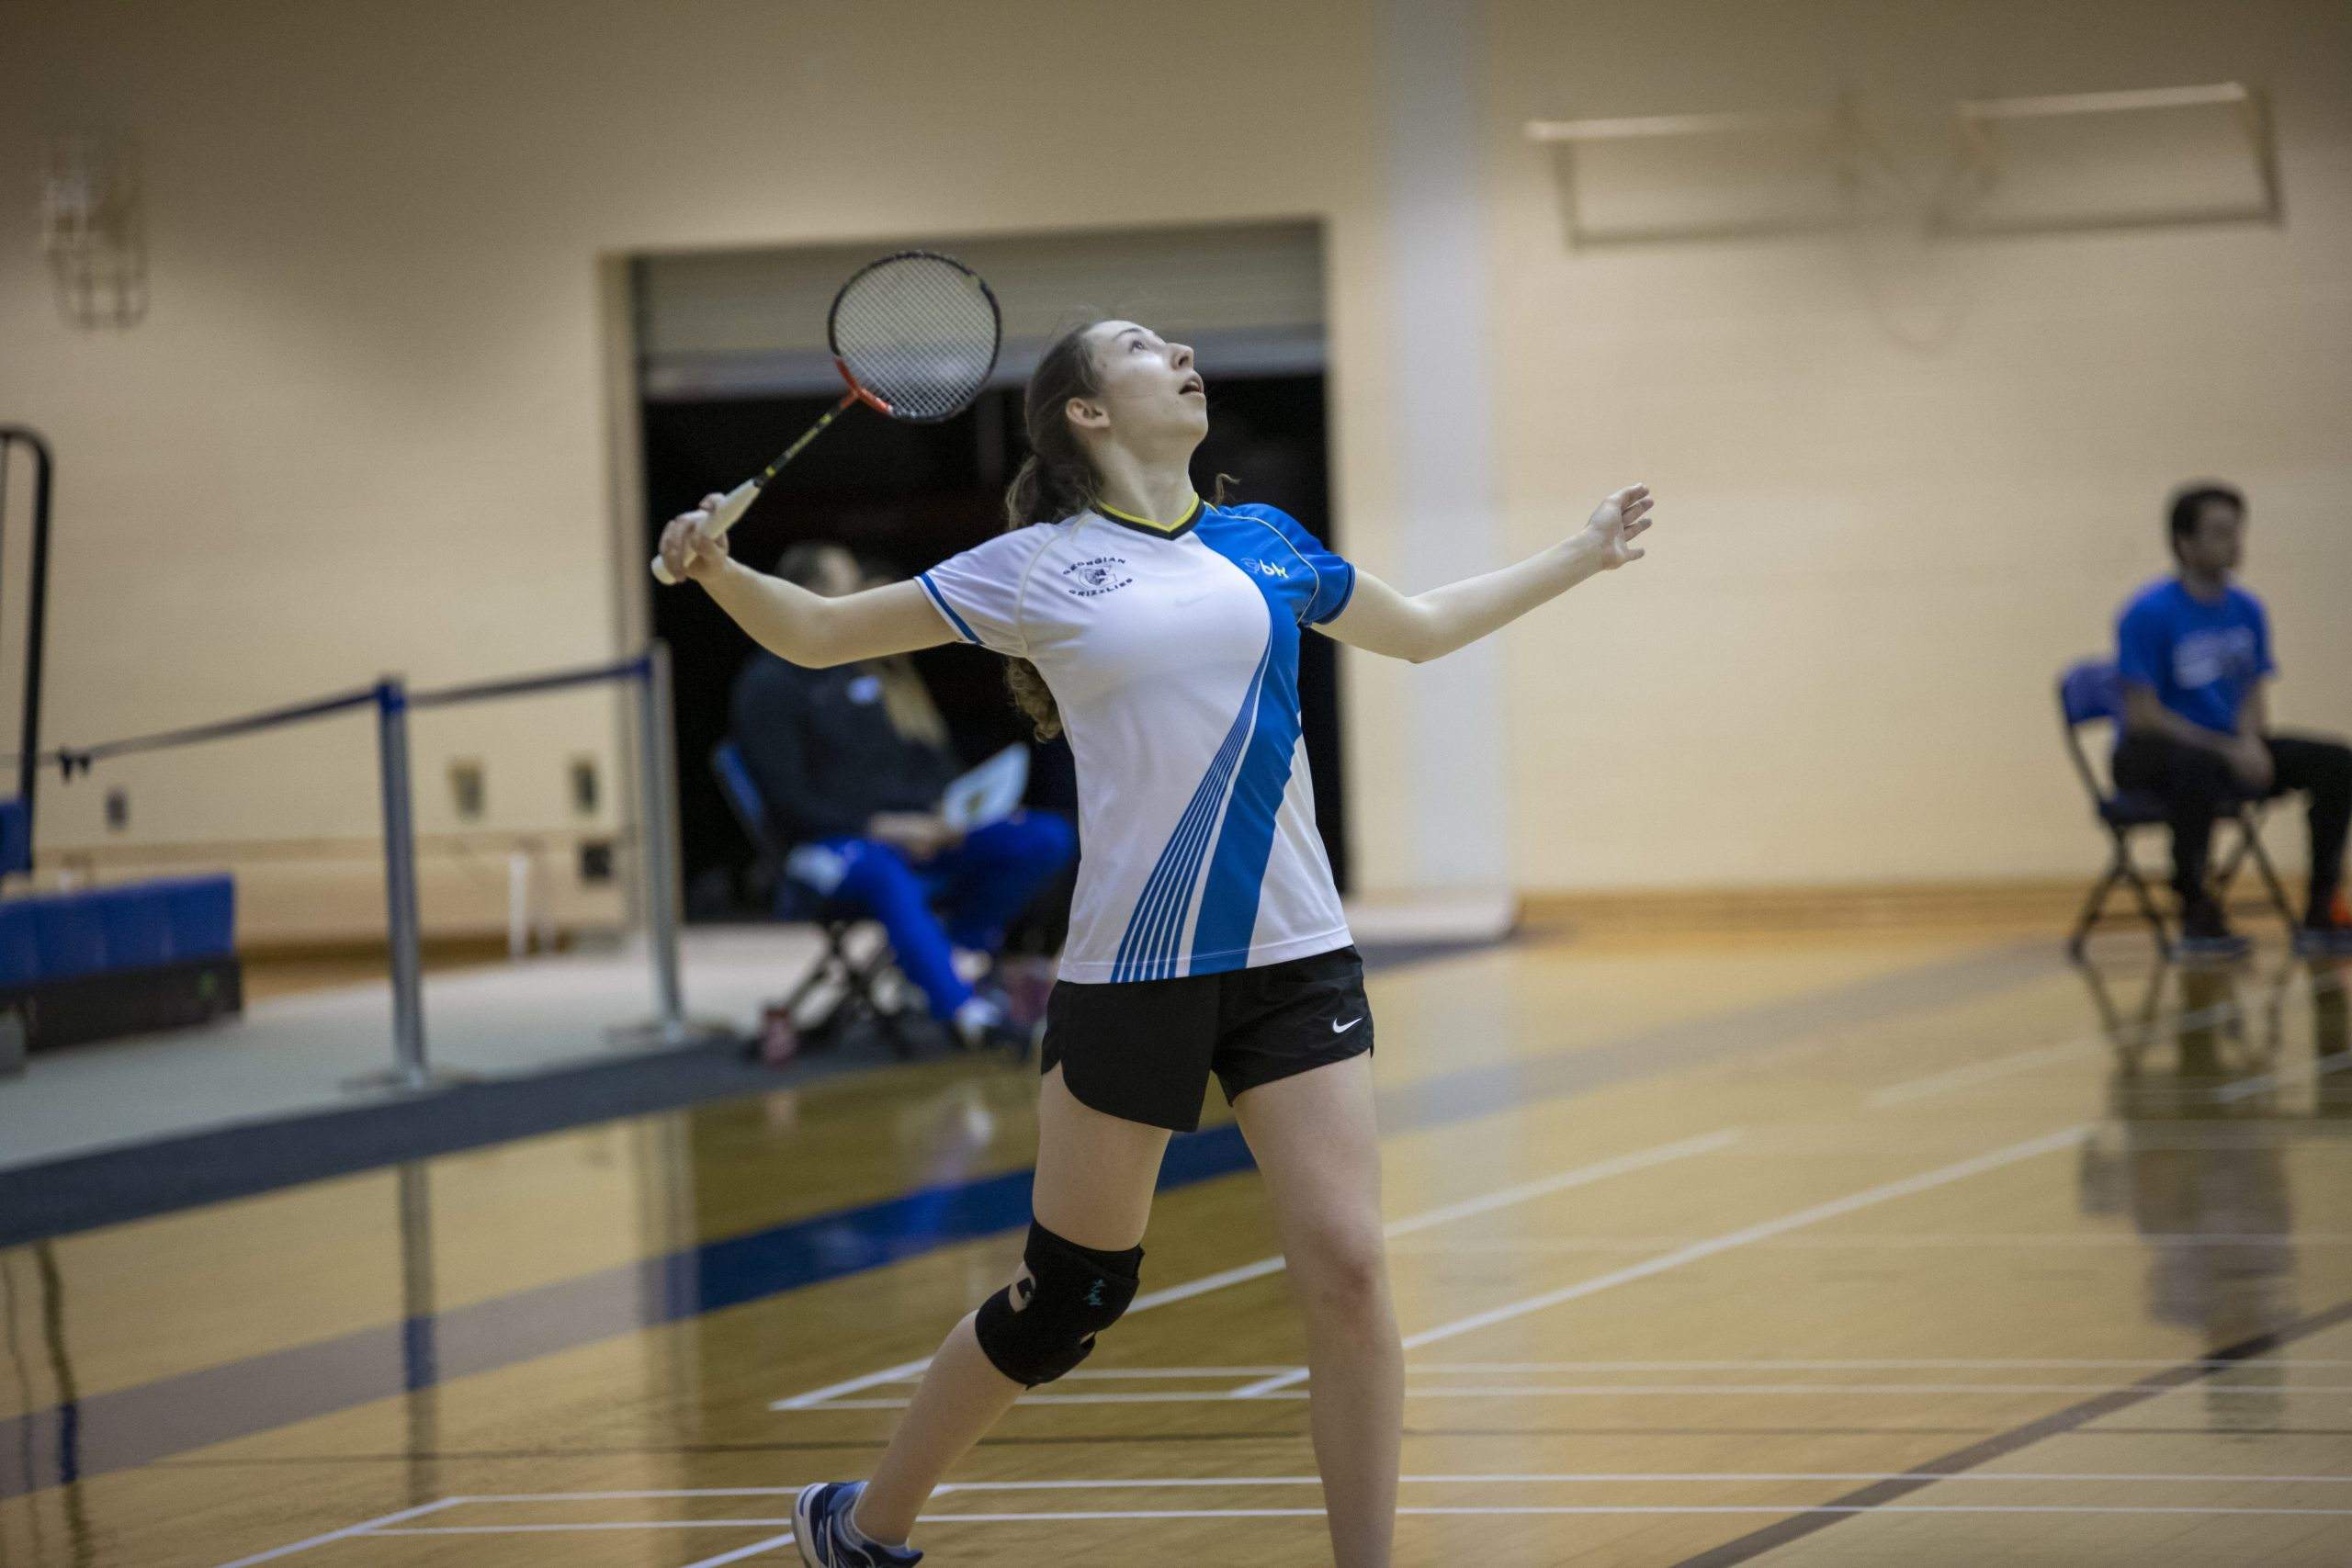 Jessica Maher playing badminton